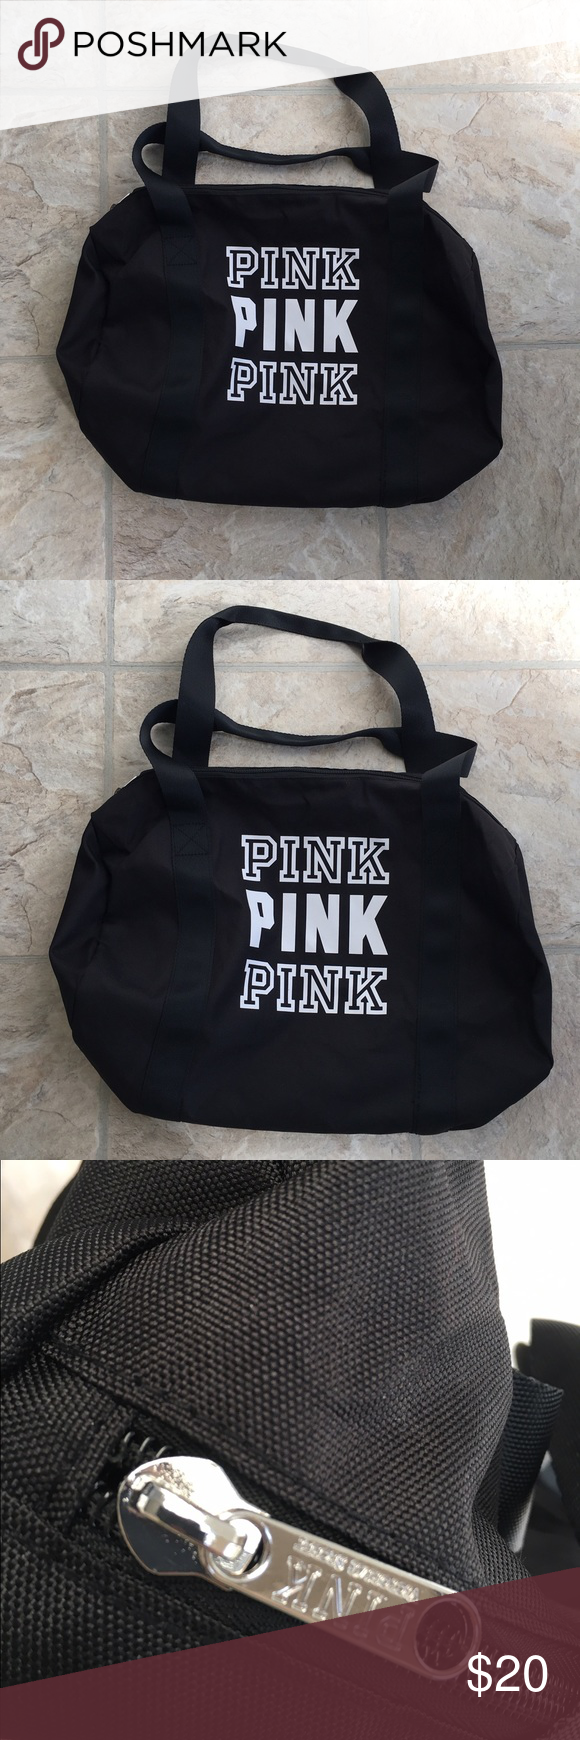 New Victoria's Secret Duffle Bag New Victoria's Secret Duffle Bag/Gym Bag. Brand New. PINK Victoria's Secret Bags